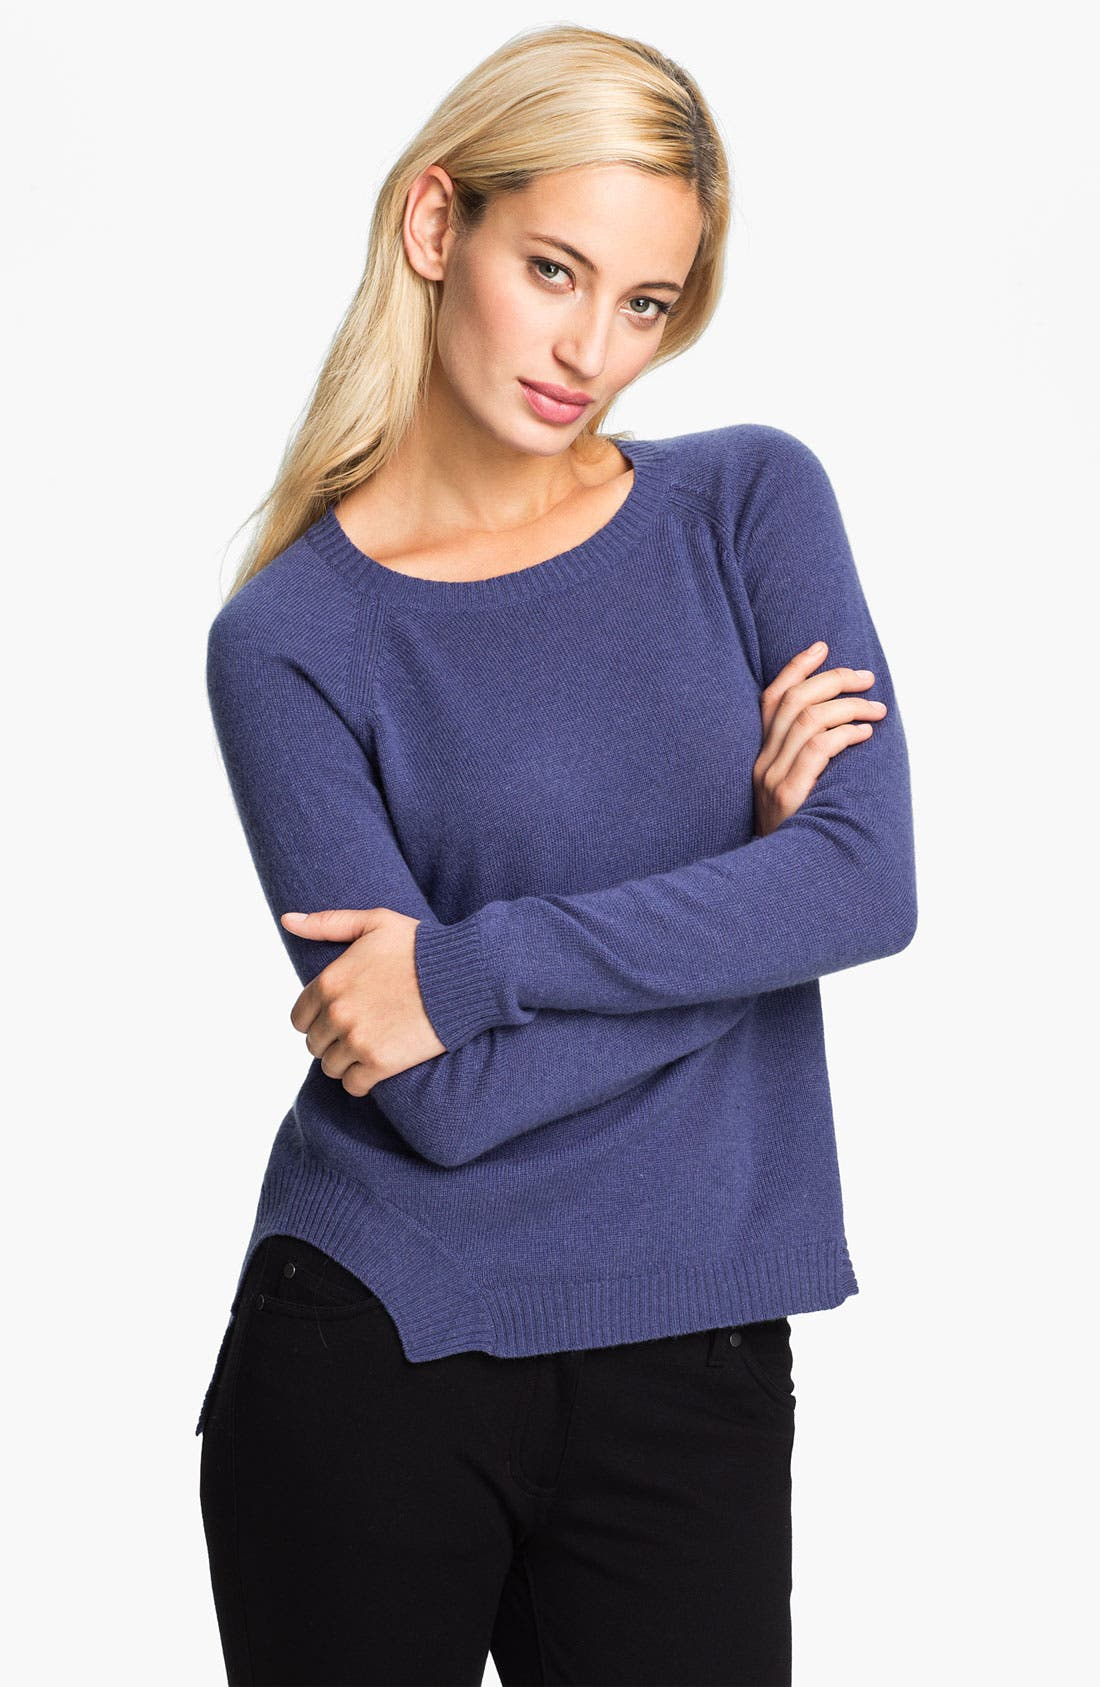 Main Image - Christopher Fischer 'Gisbelle' Cashmere Sweater (Online Exclusive)